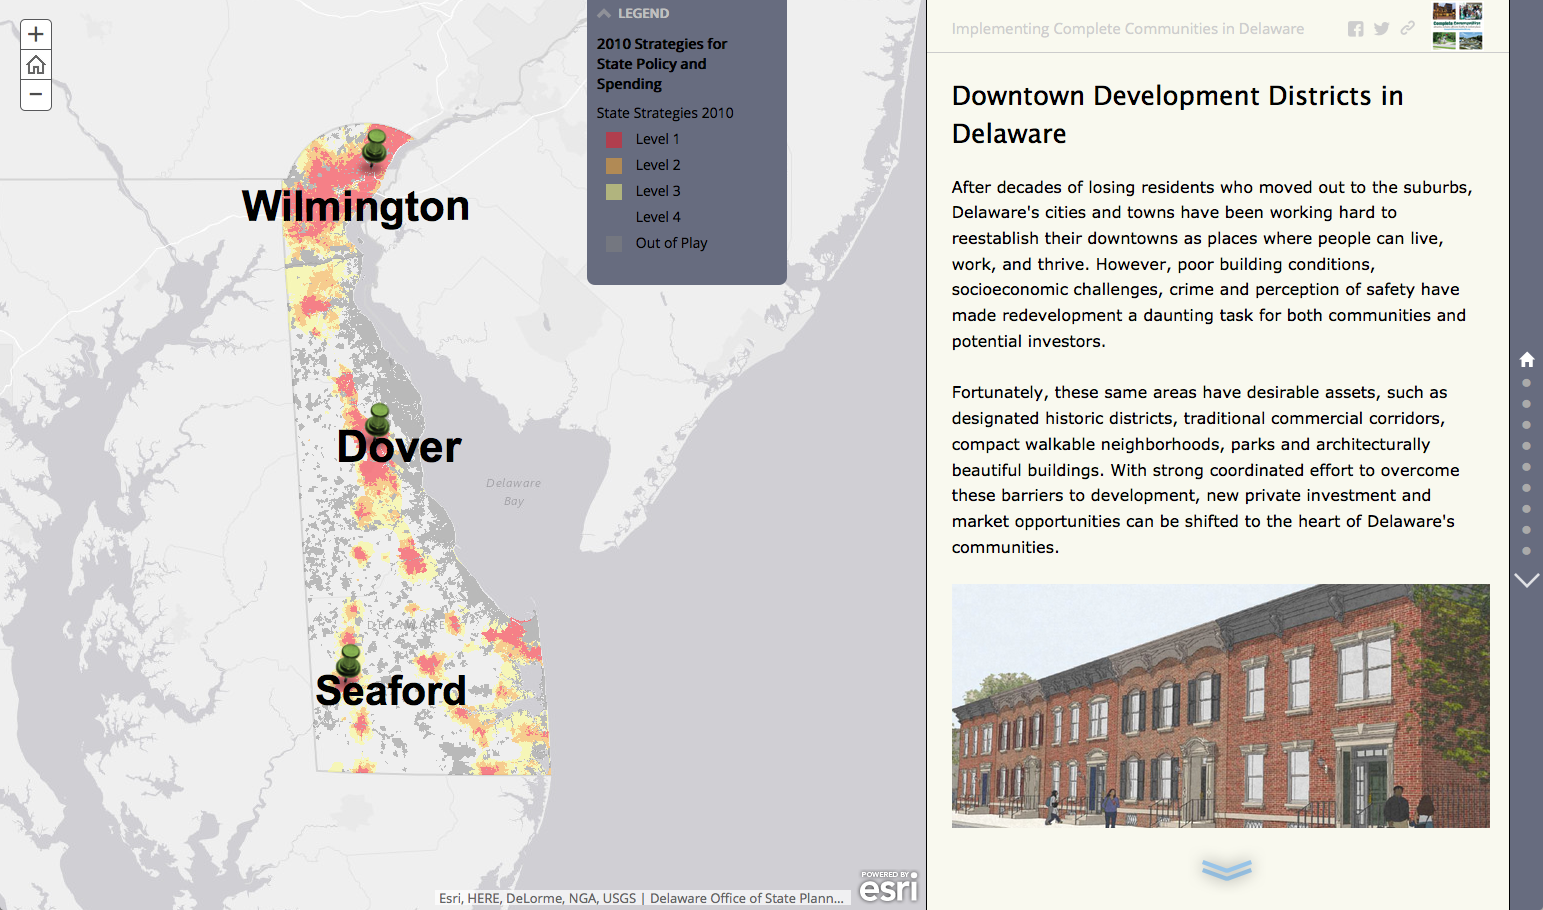 Screen shot of GIS Story Map featuring Downtown Development Districts